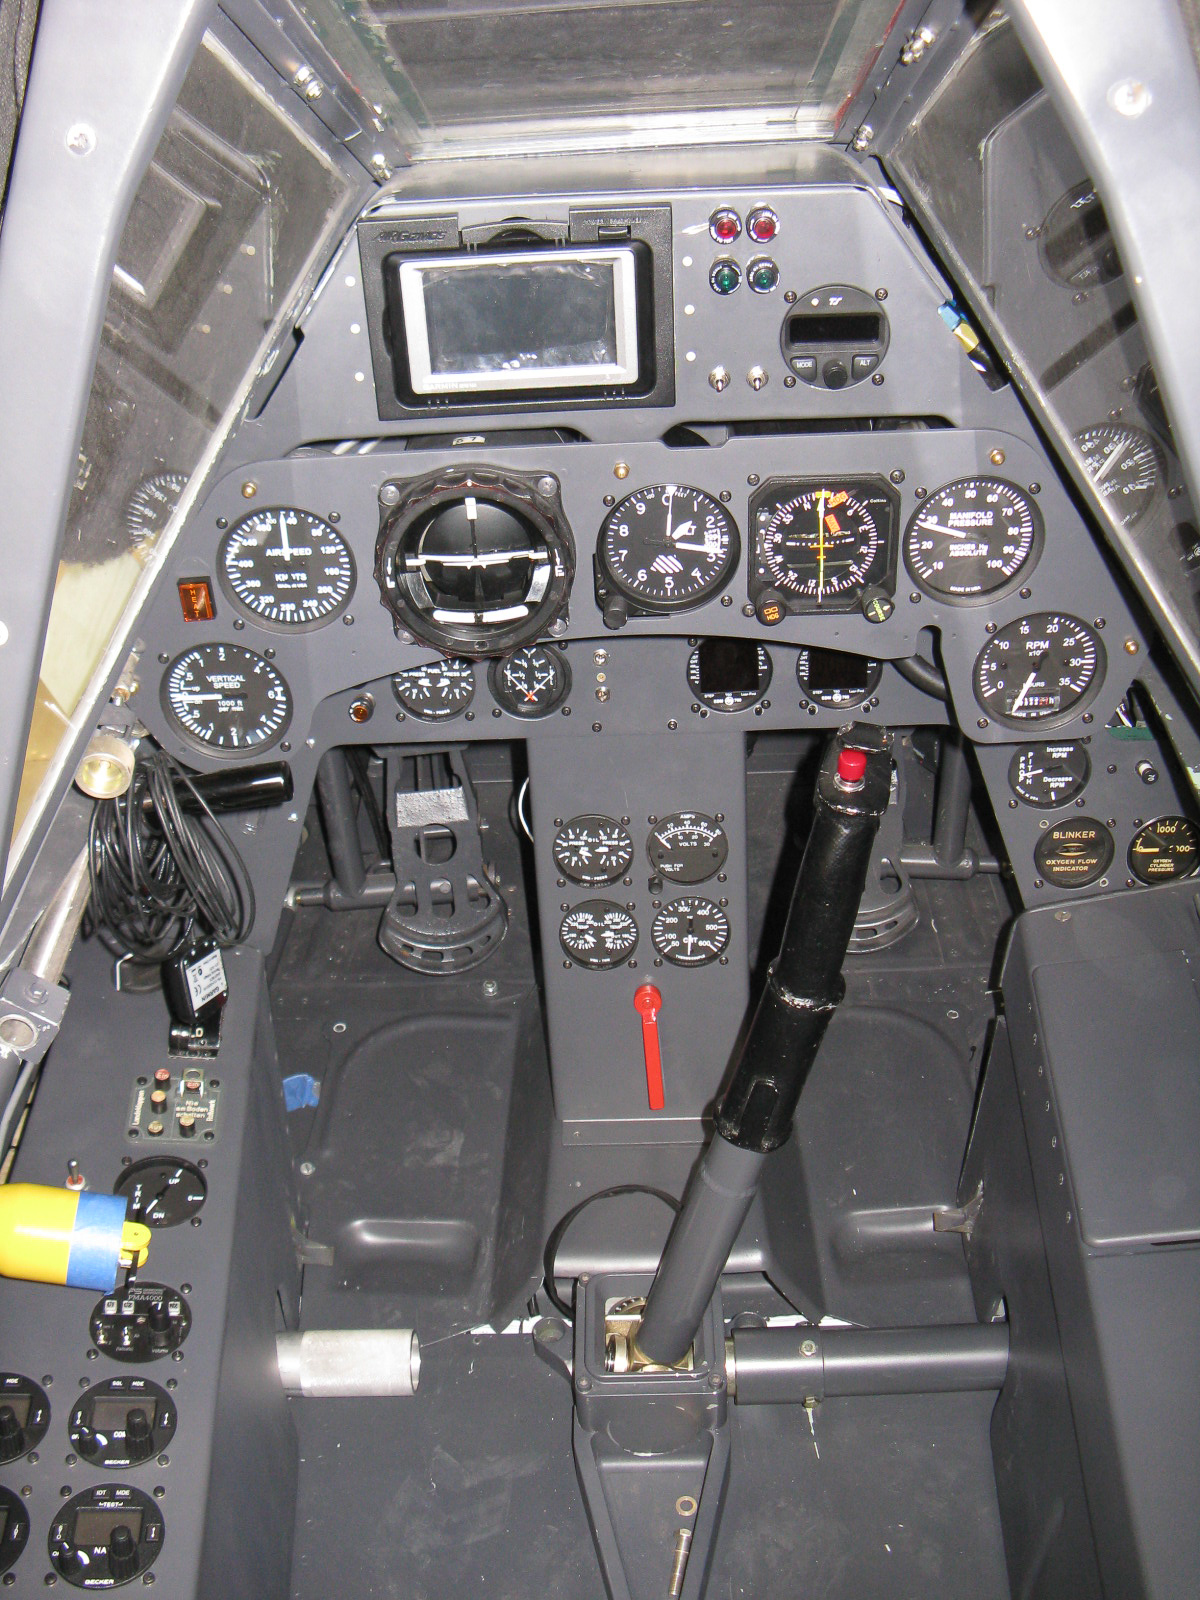 The fully equipped cockpit FW-190. (photo via GossHawk Unlimited)